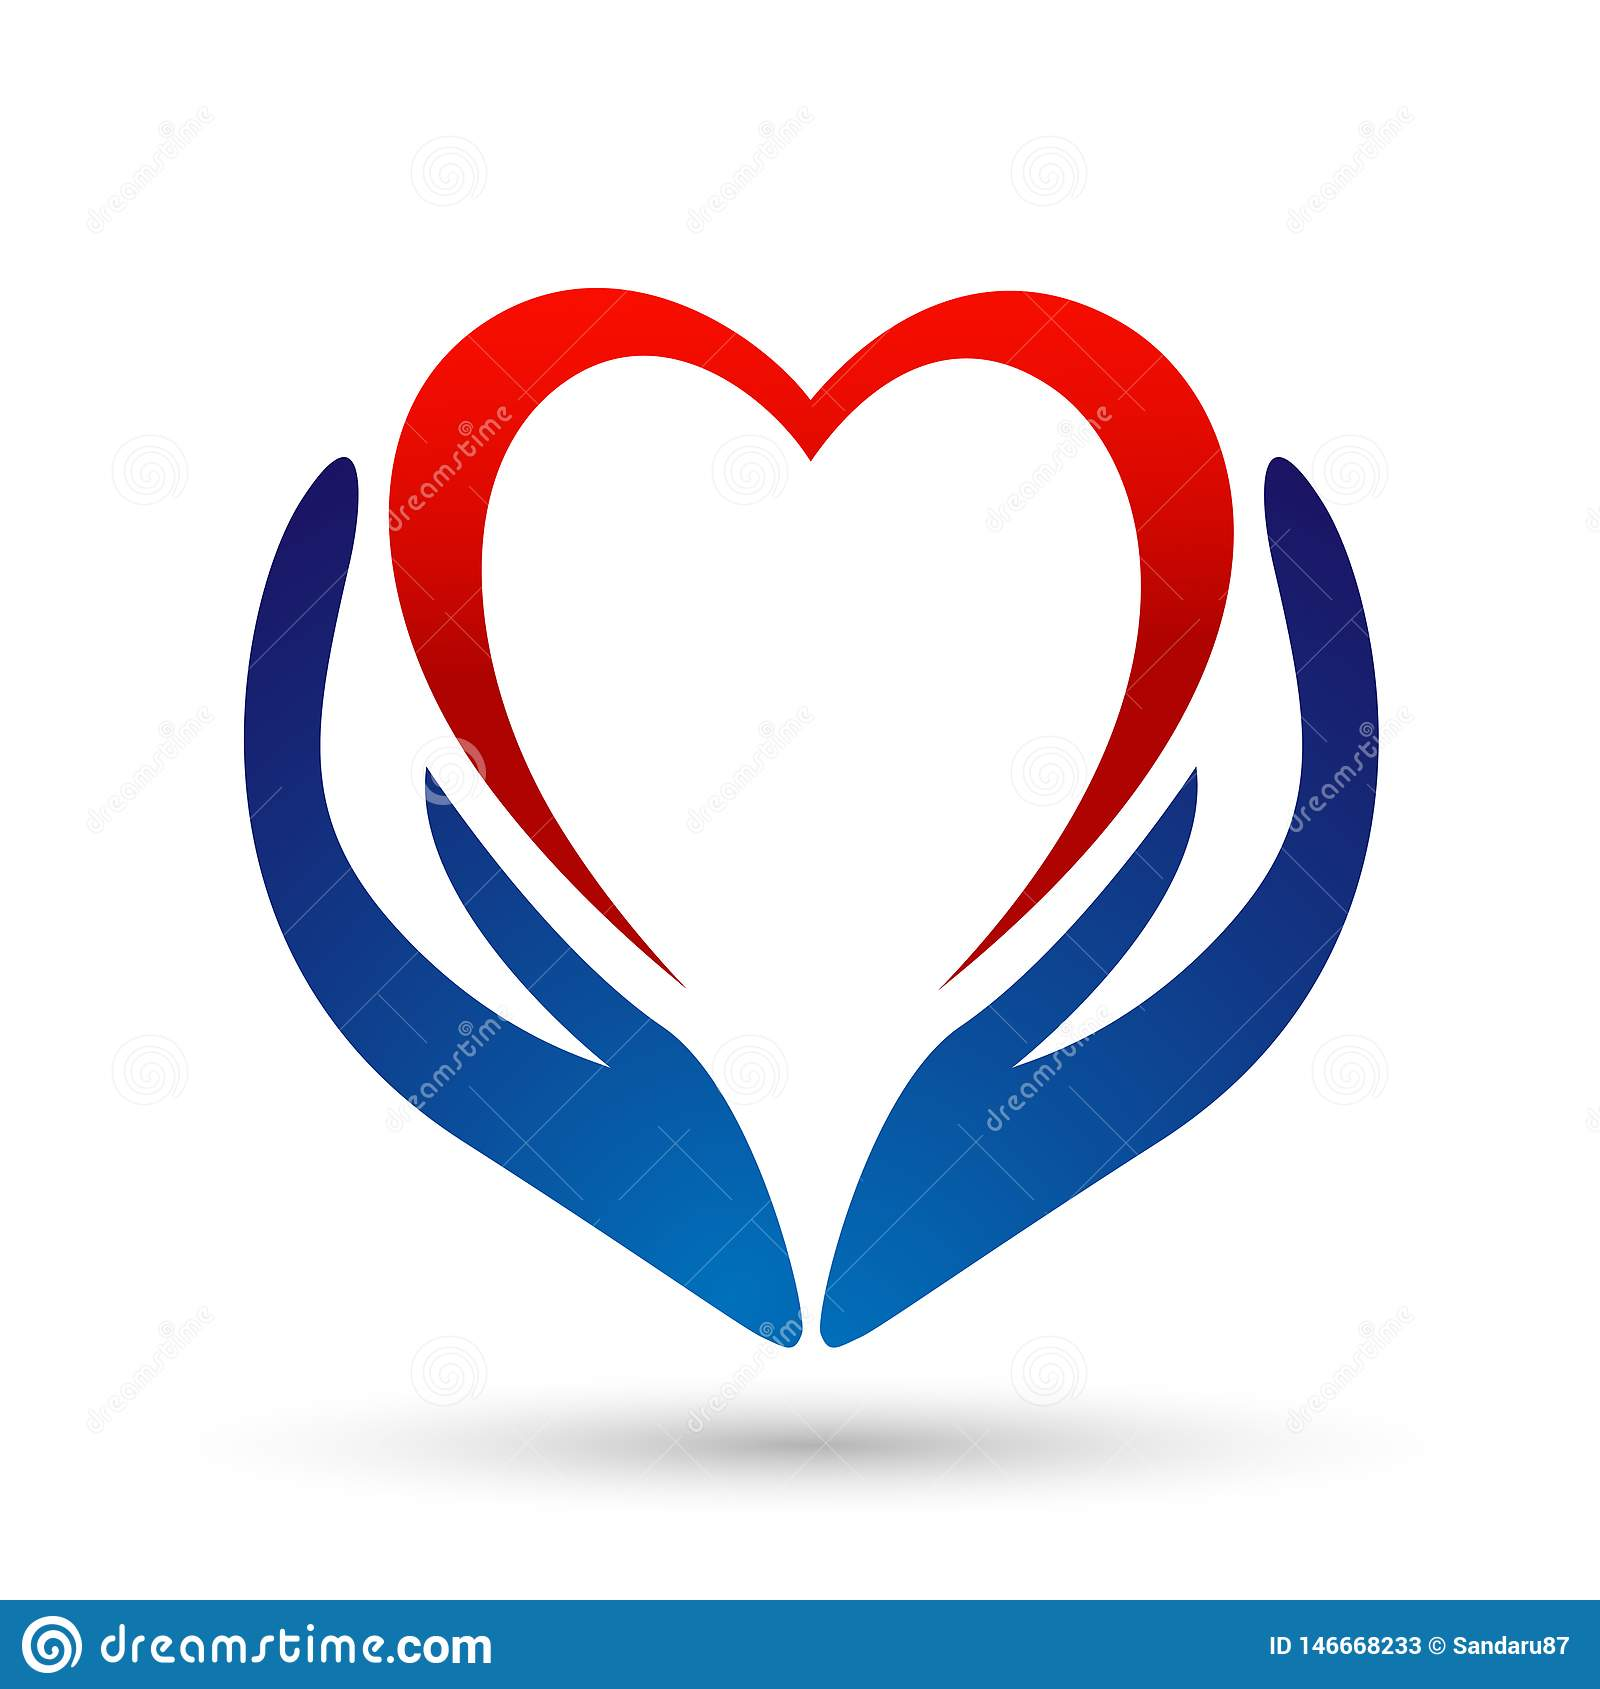 Medical health heart care clinic people healthy life care logo design icon on white background